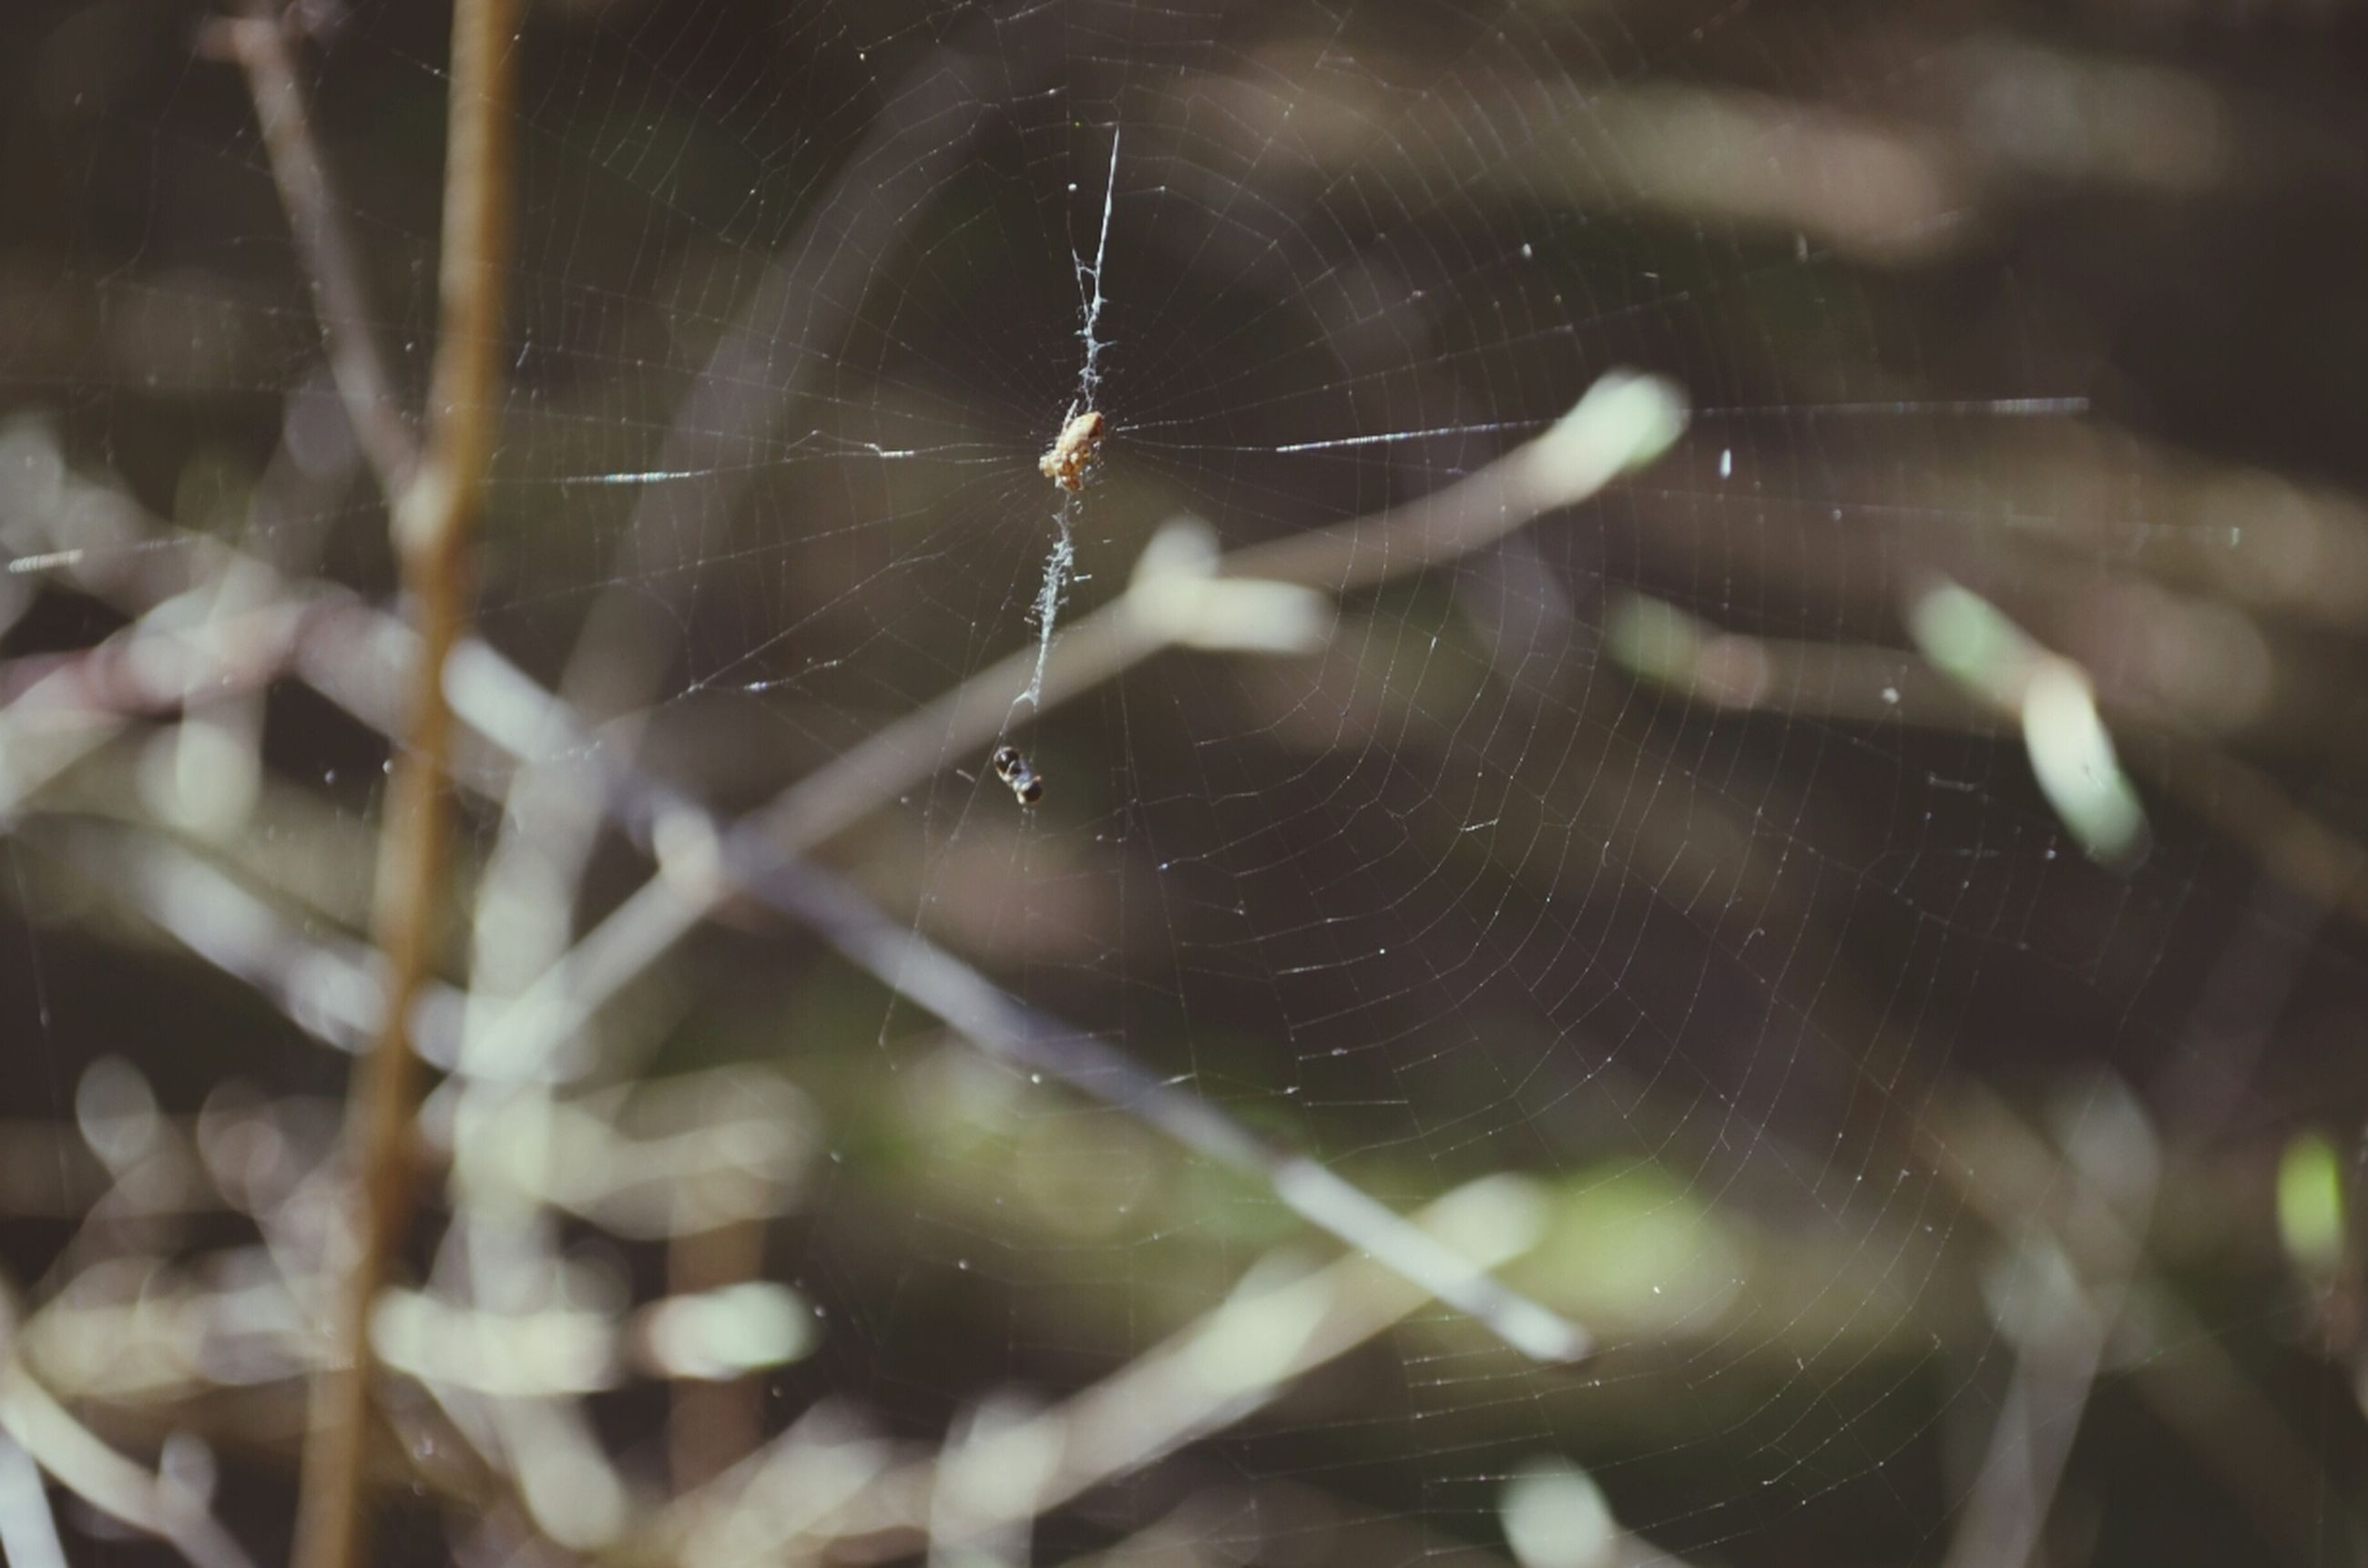 water, focus on foreground, drop, close-up, spider web, wet, selective focus, nature, fragility, outdoors, day, unrecognizable person, motion, rain, part of, plant, lifestyles, person